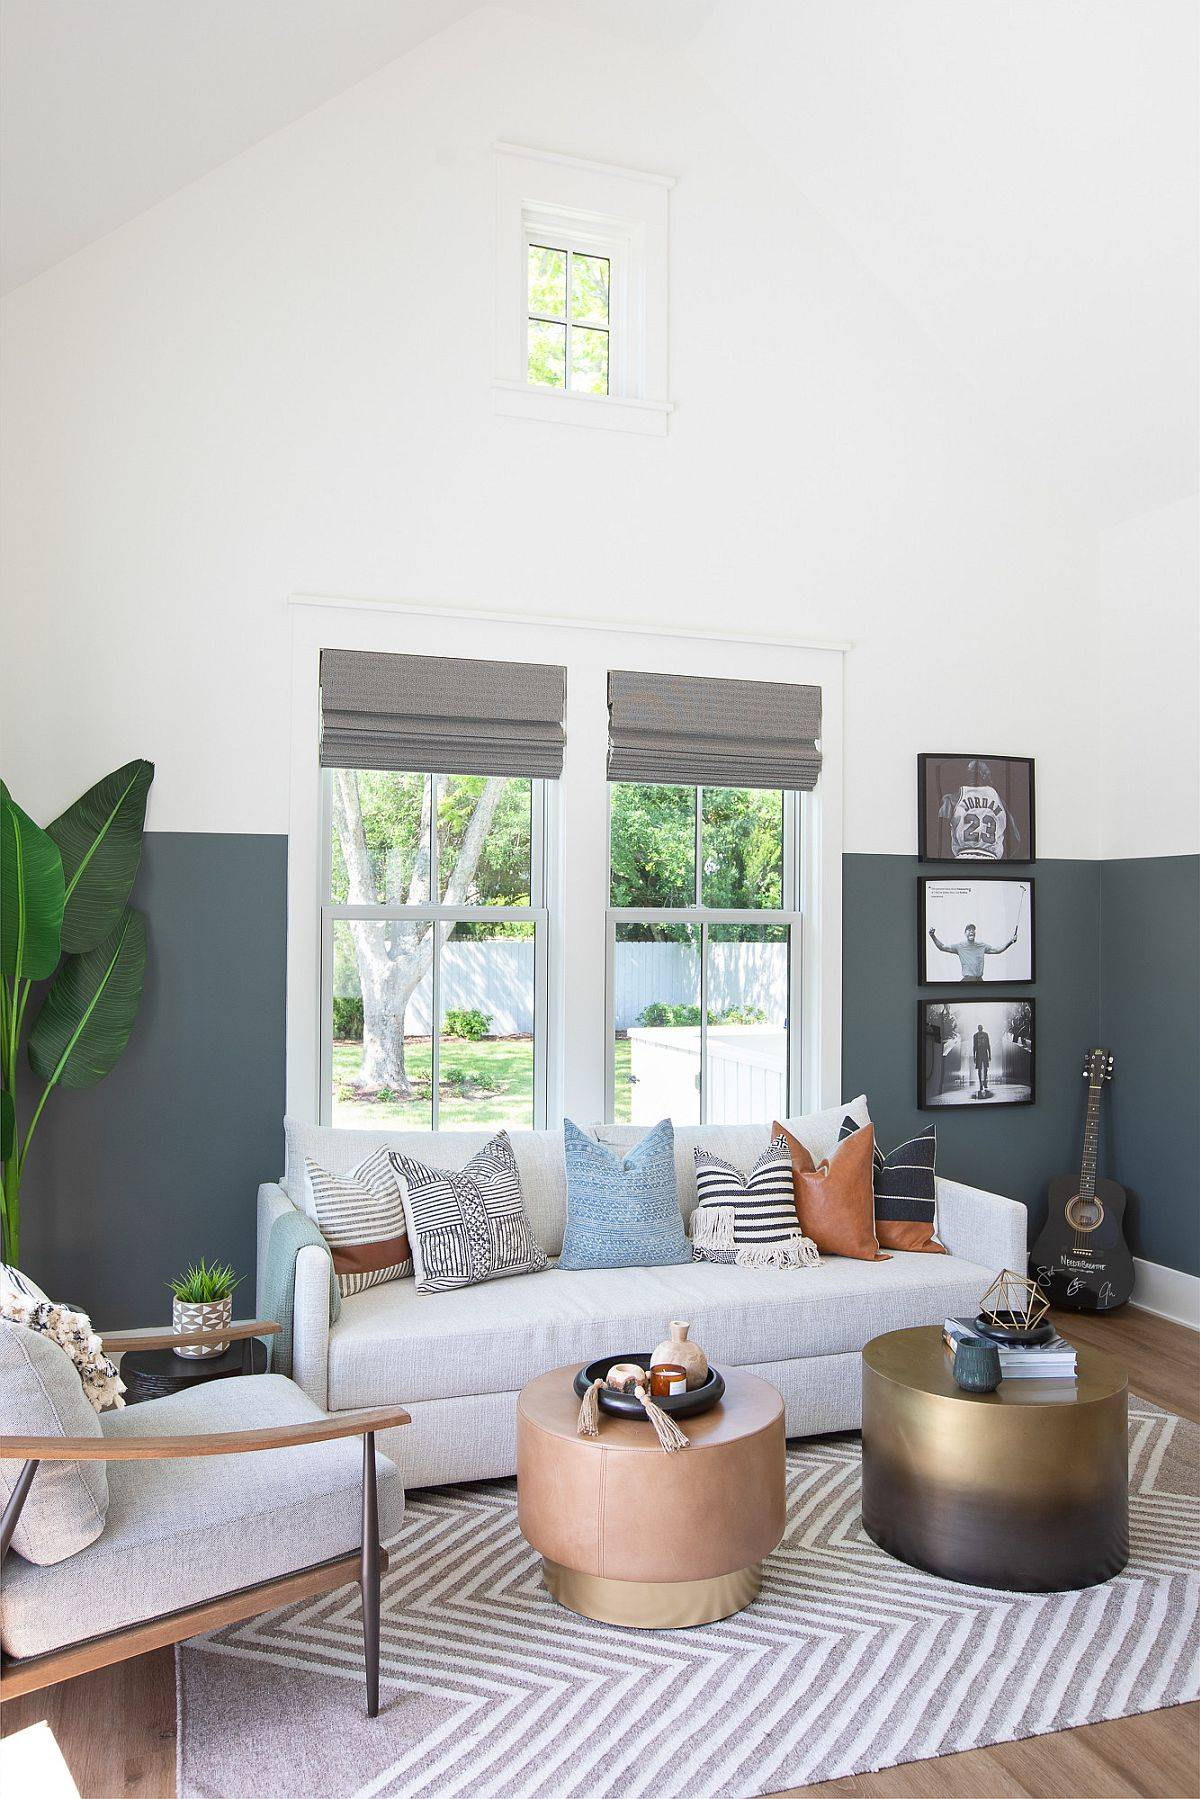 Double-height-family-room-in-gray-and-white-with-slanted-ceiling-and-color-scheme-in-gray-and-white-87757